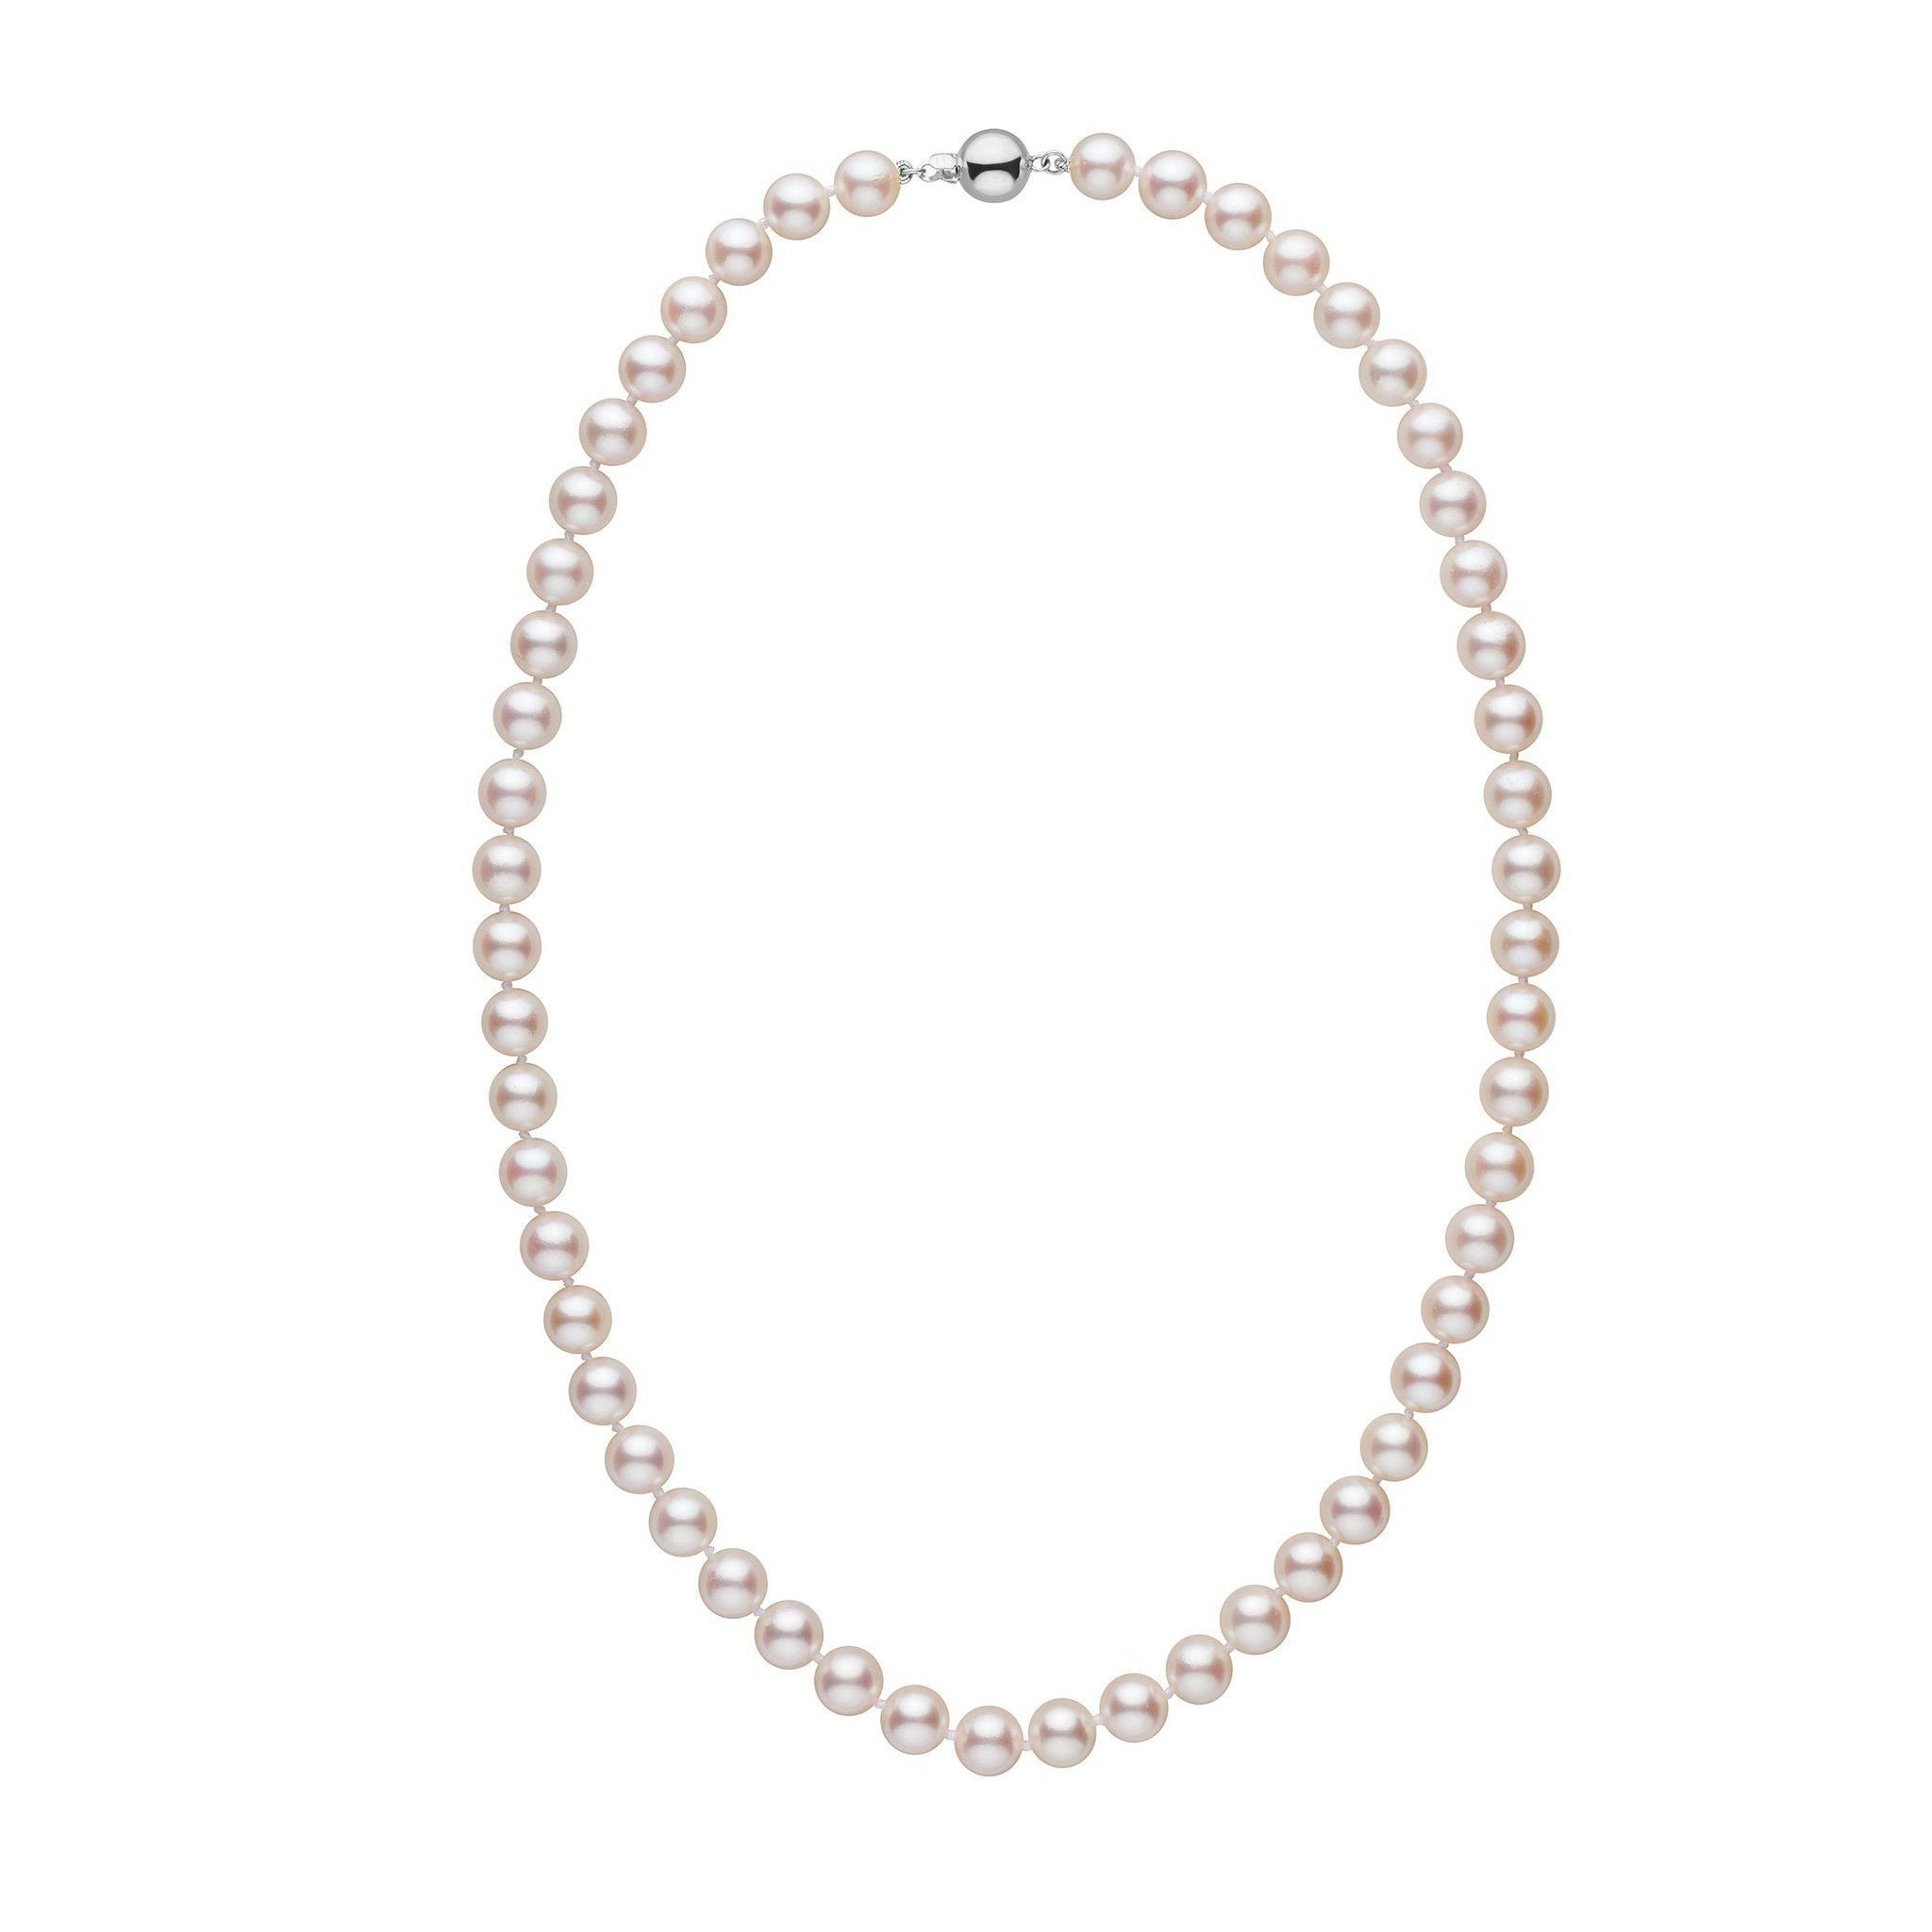 7.5-8.0 mm 18 inch AA+ White Akoya Pearl Necklace